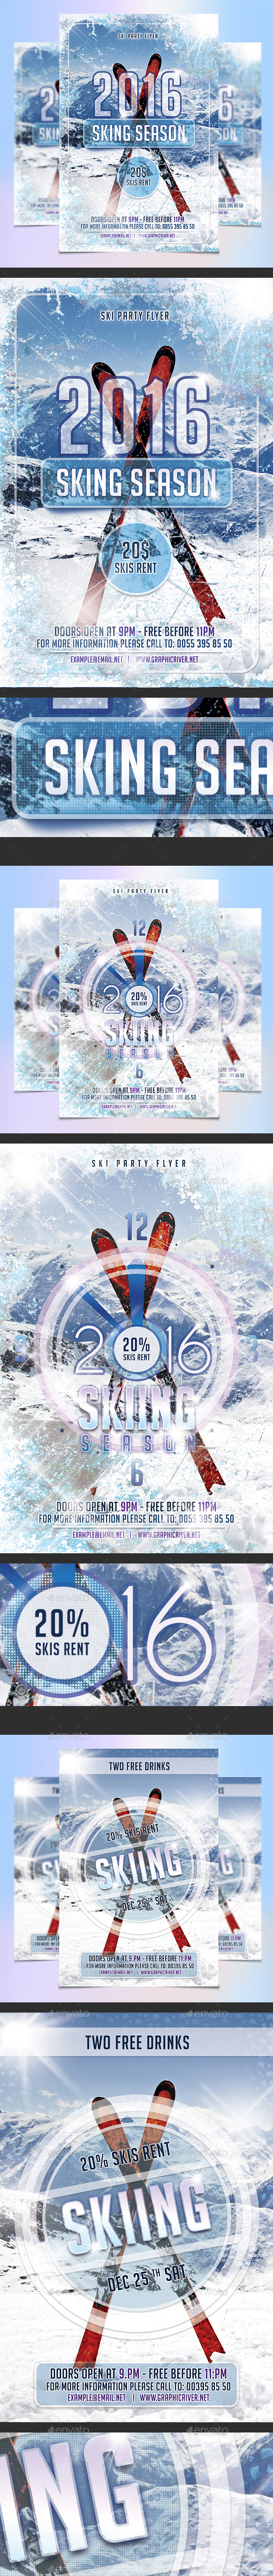 Skiing Season Flyers Template Bundle - Sports Events